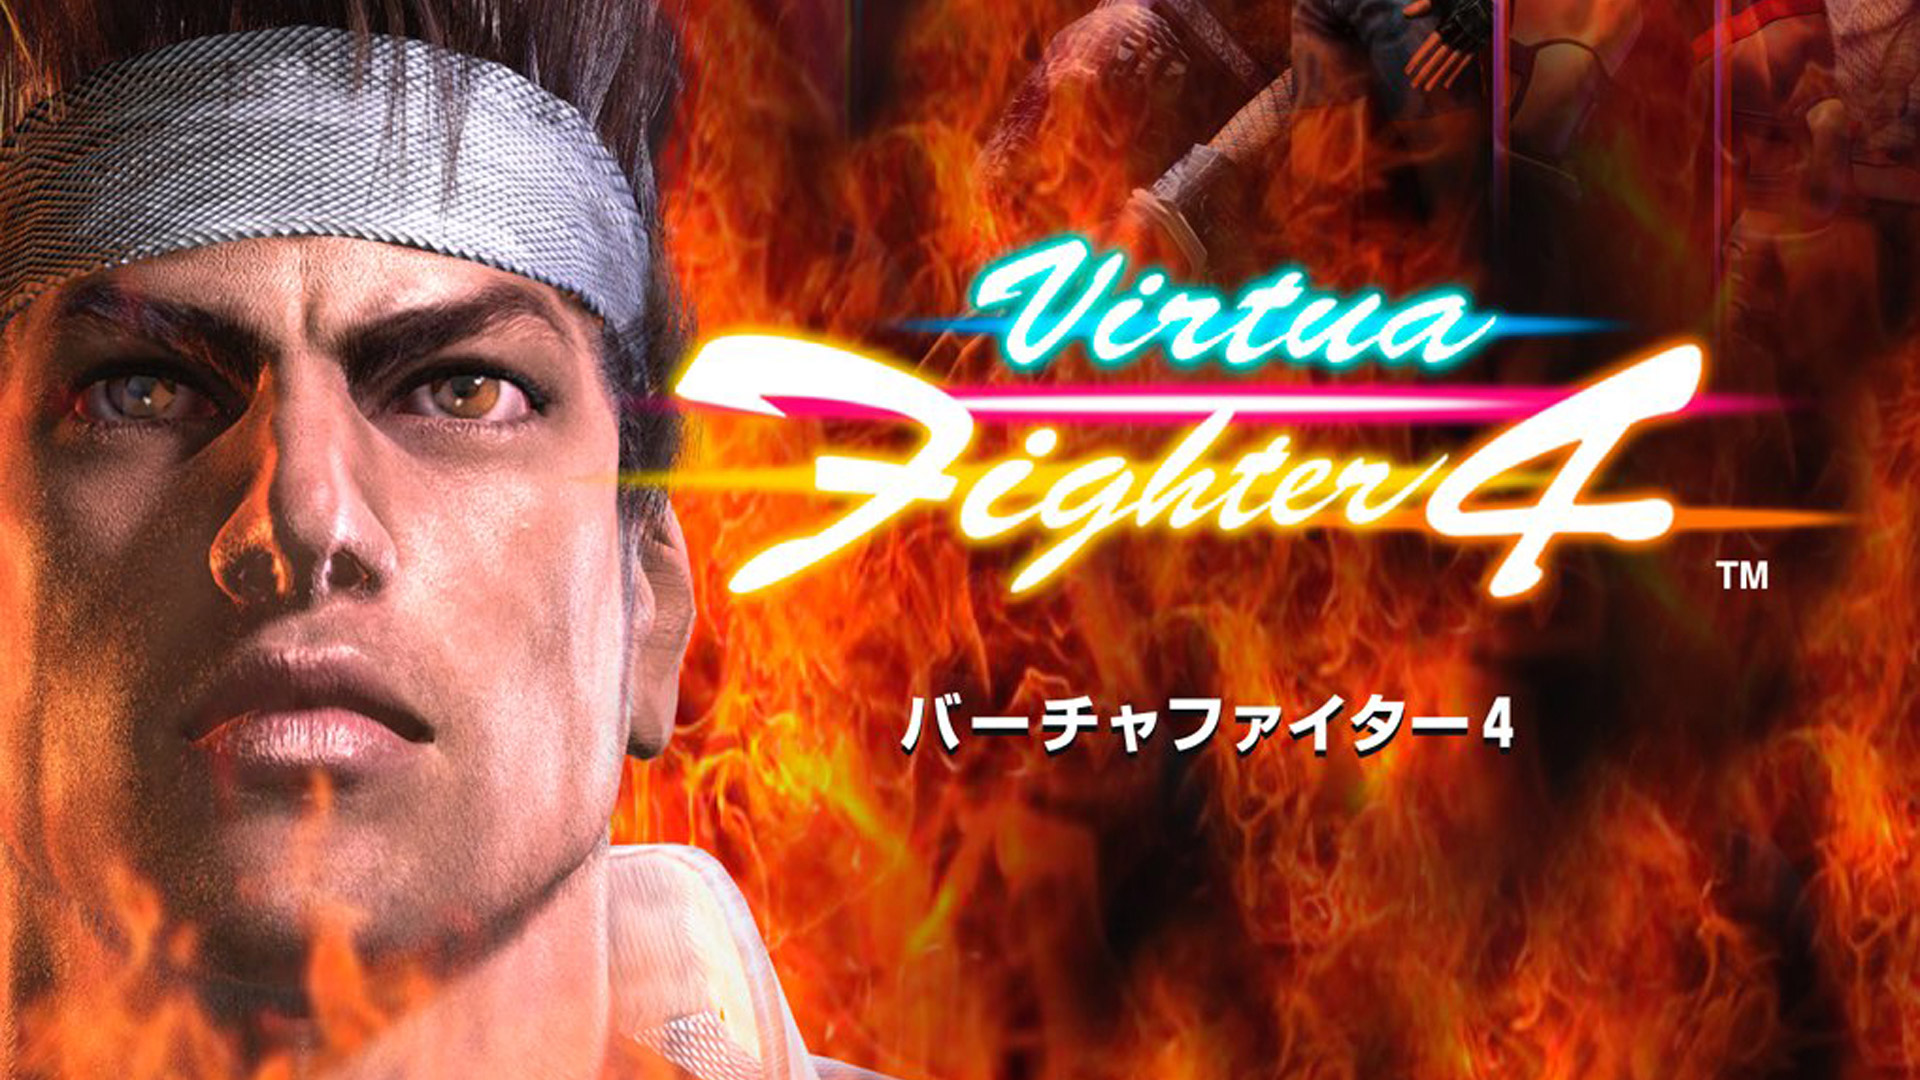 Free Virtua Figther 4 Wallpaper in 1920x1080